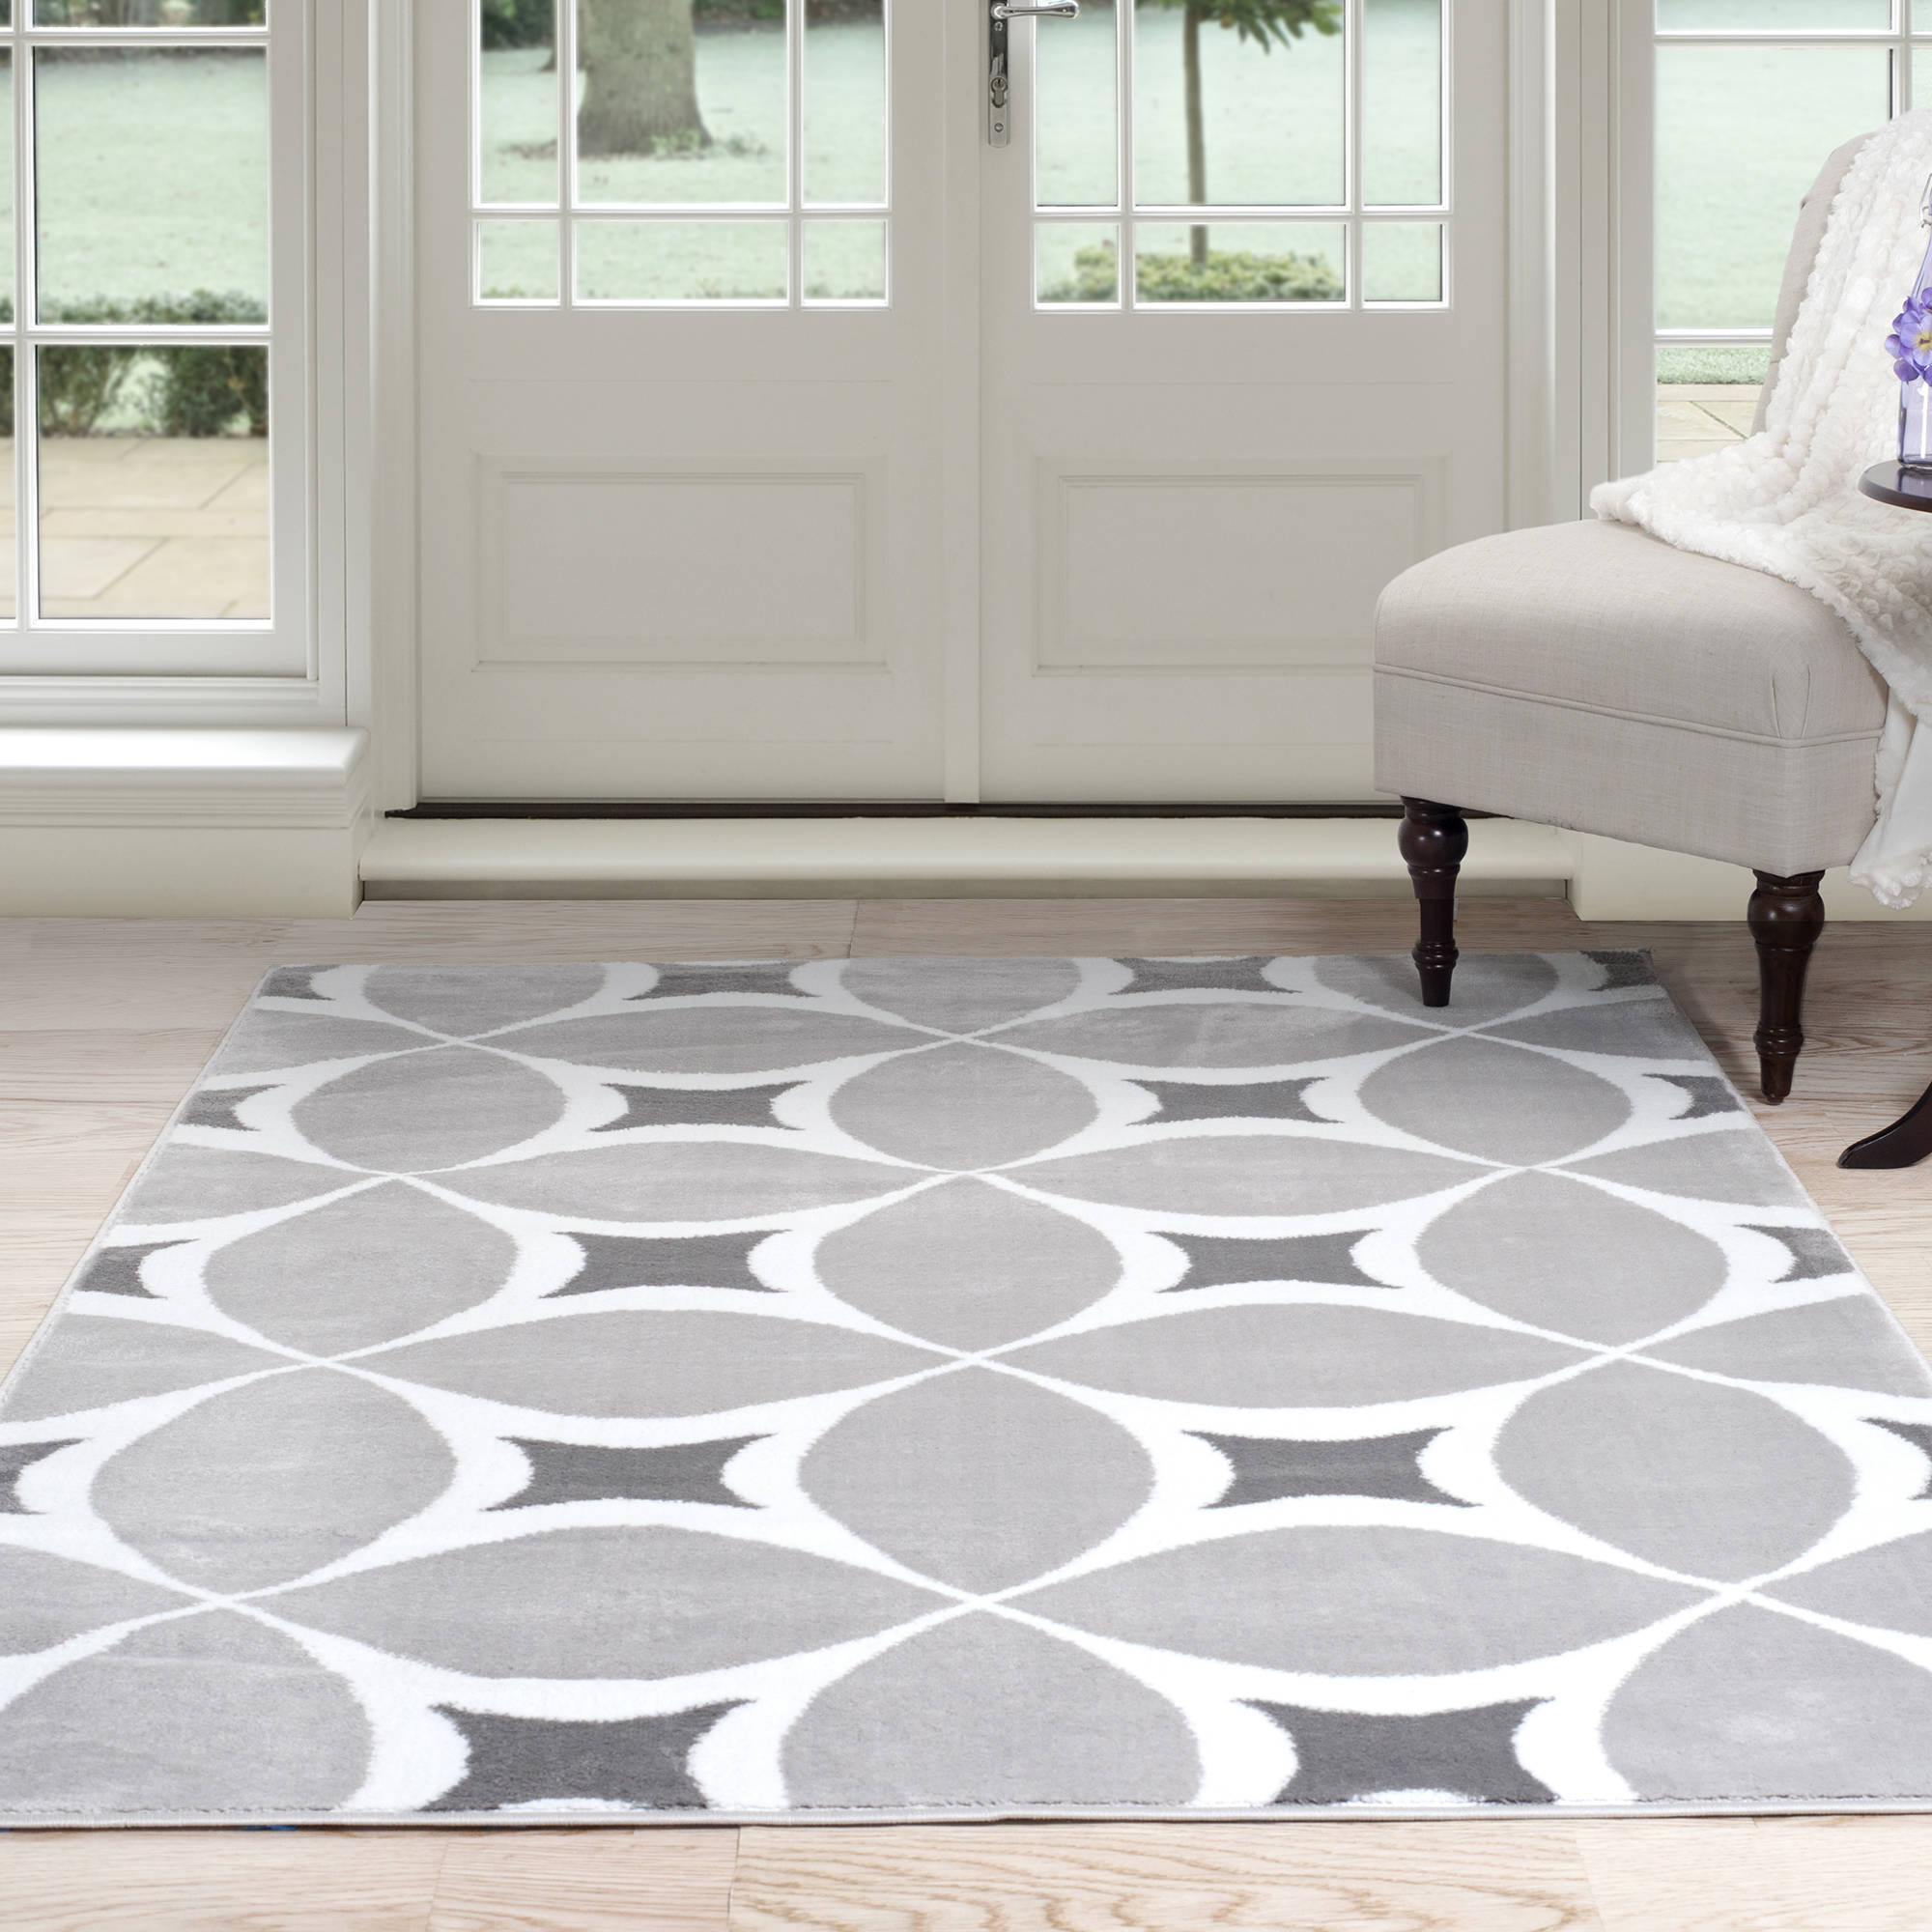 Somerset Home Geometric Area Rug, Grey And White   Walmart.com